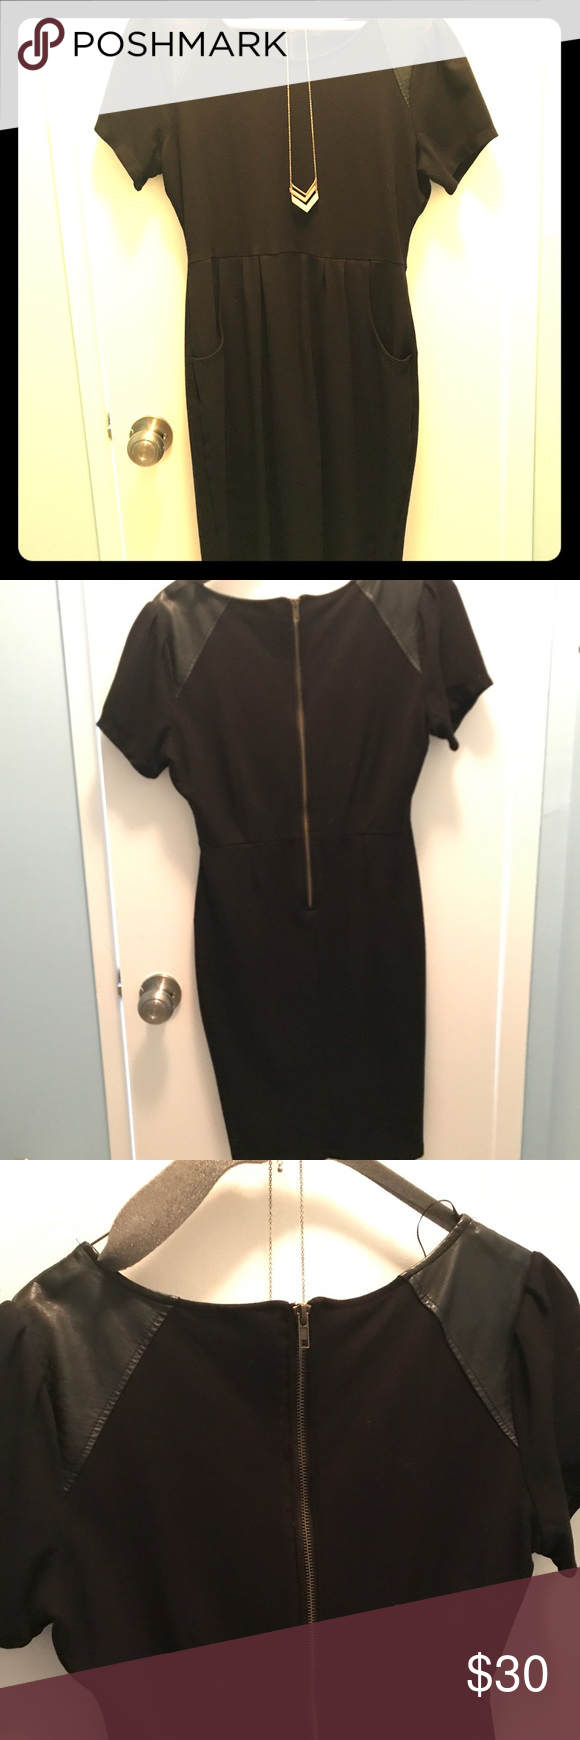 The Limited Black Dress With Pockets Black Dress With Pockets Black Dress Dresses [ 1740 x 580 Pixel ]